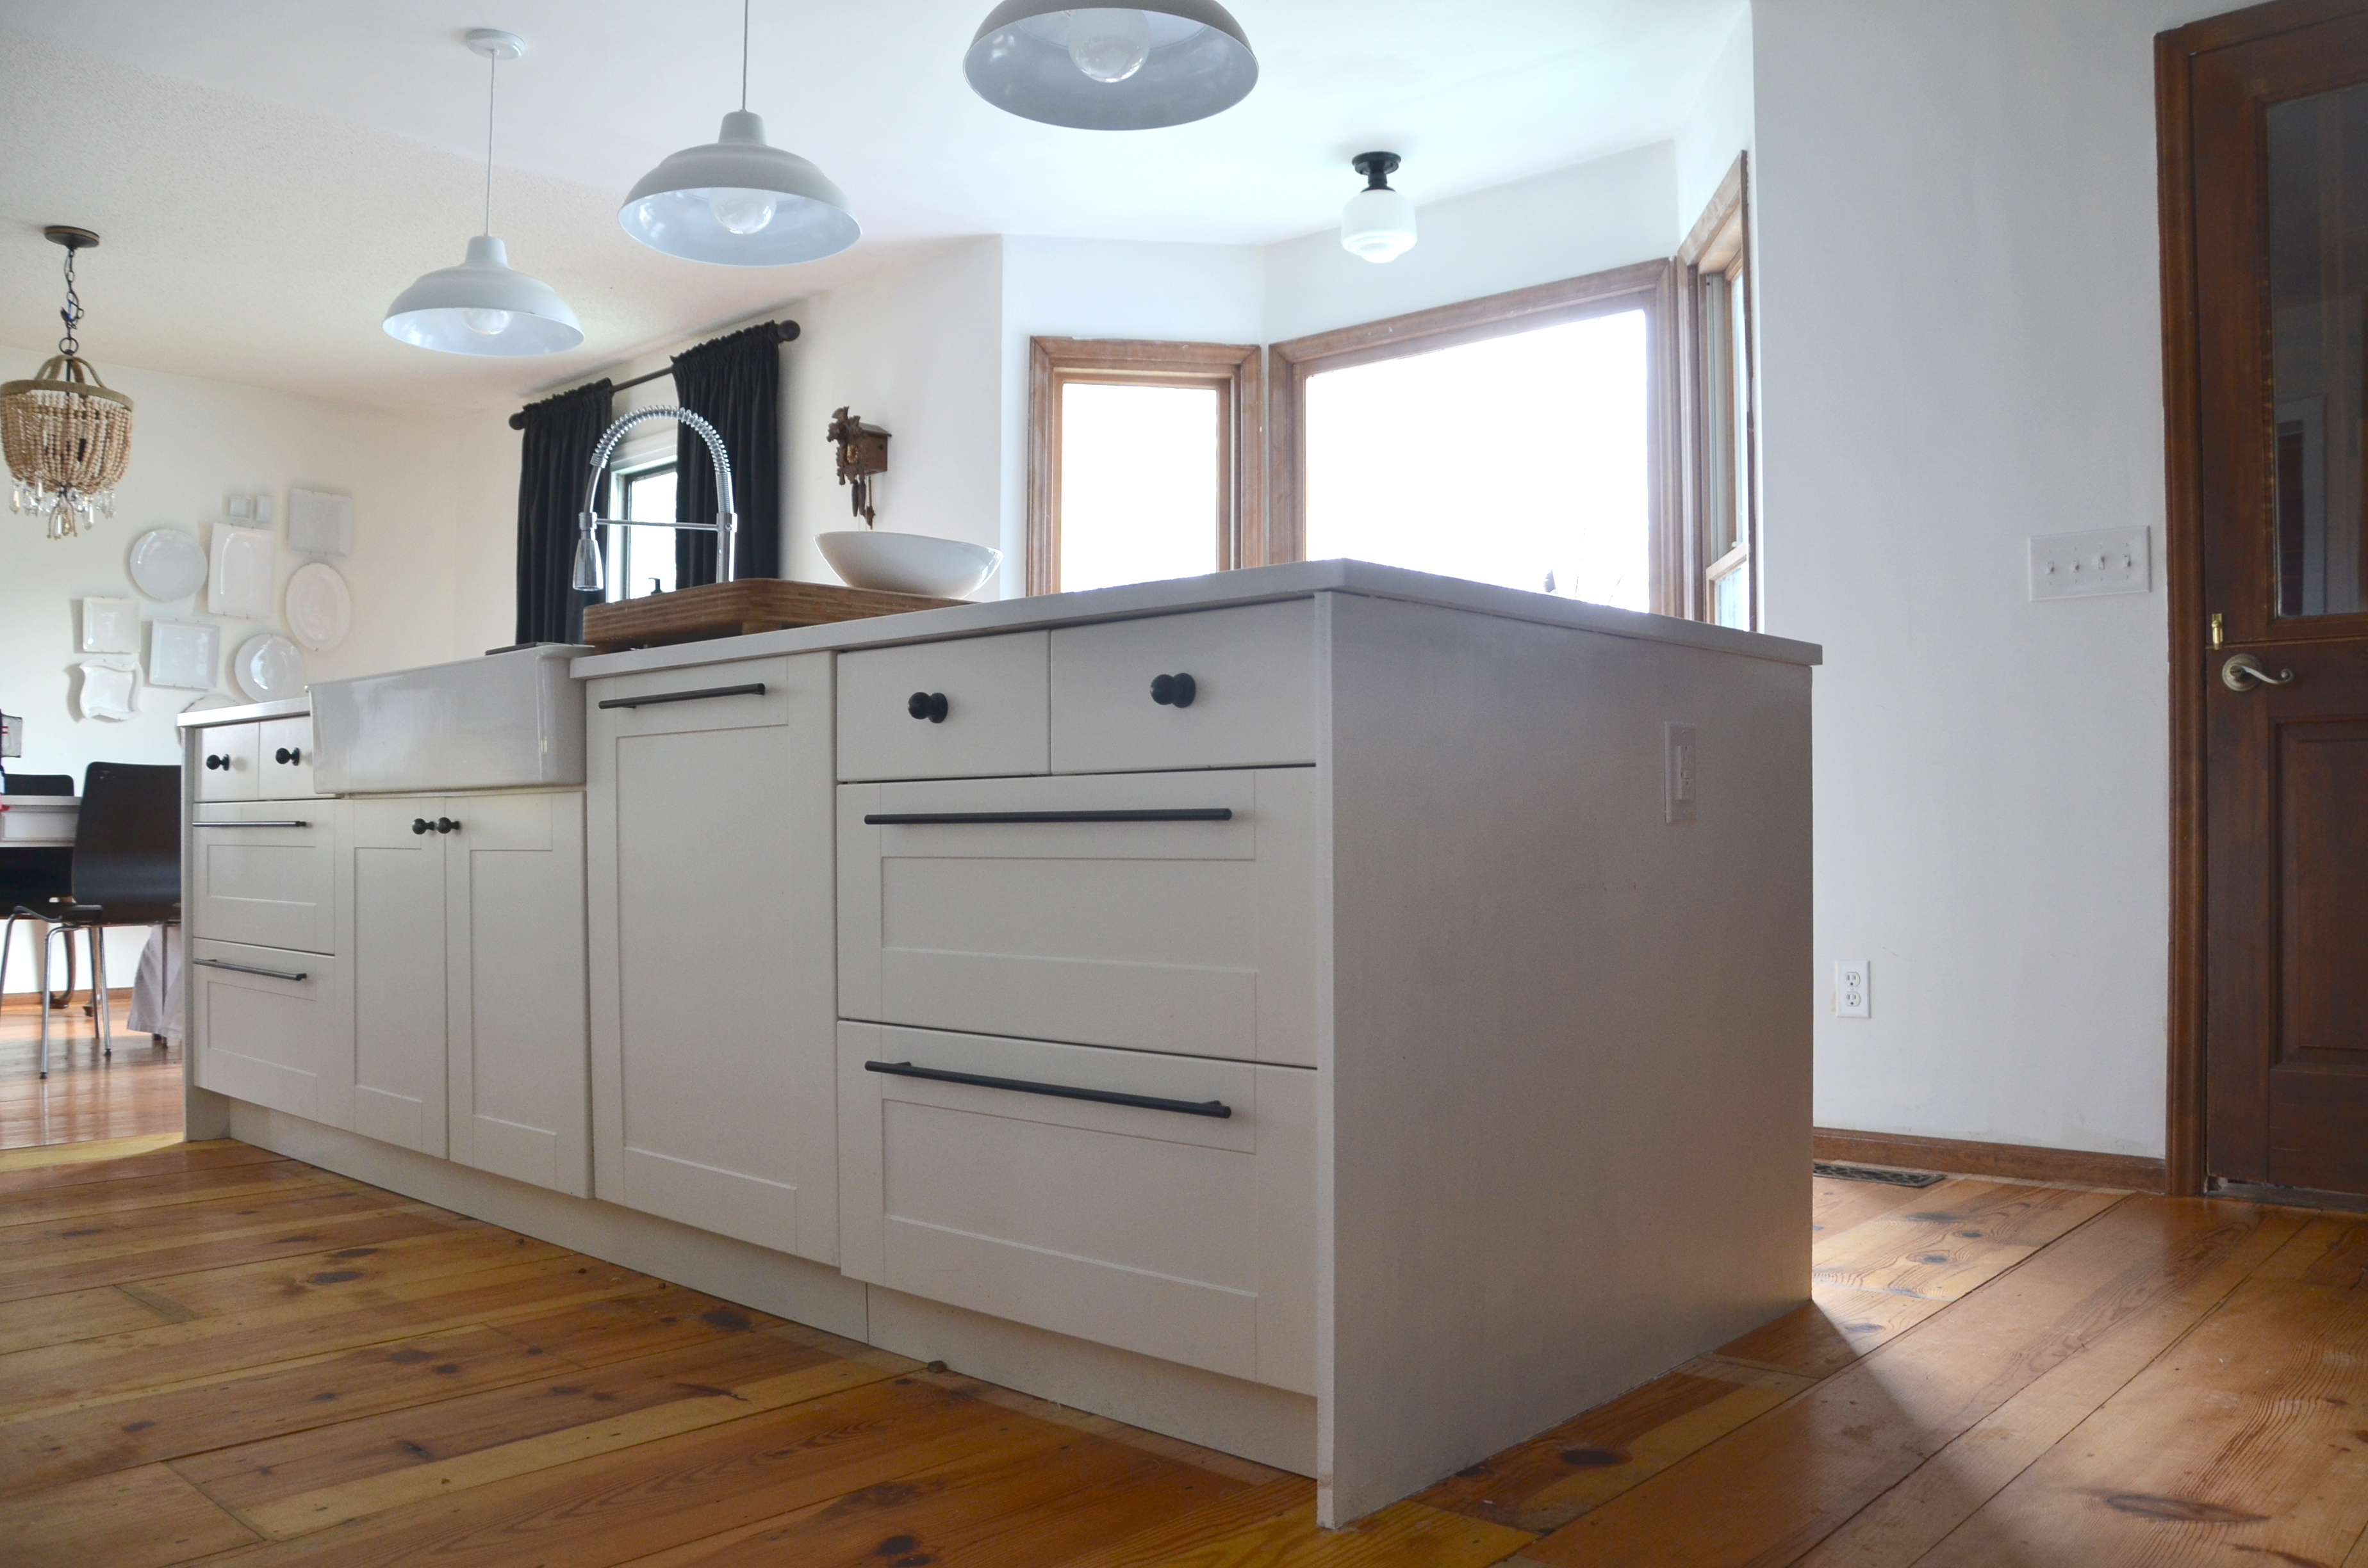 How To Fake A Kitchen Island Waterfall Edge Nesting Place